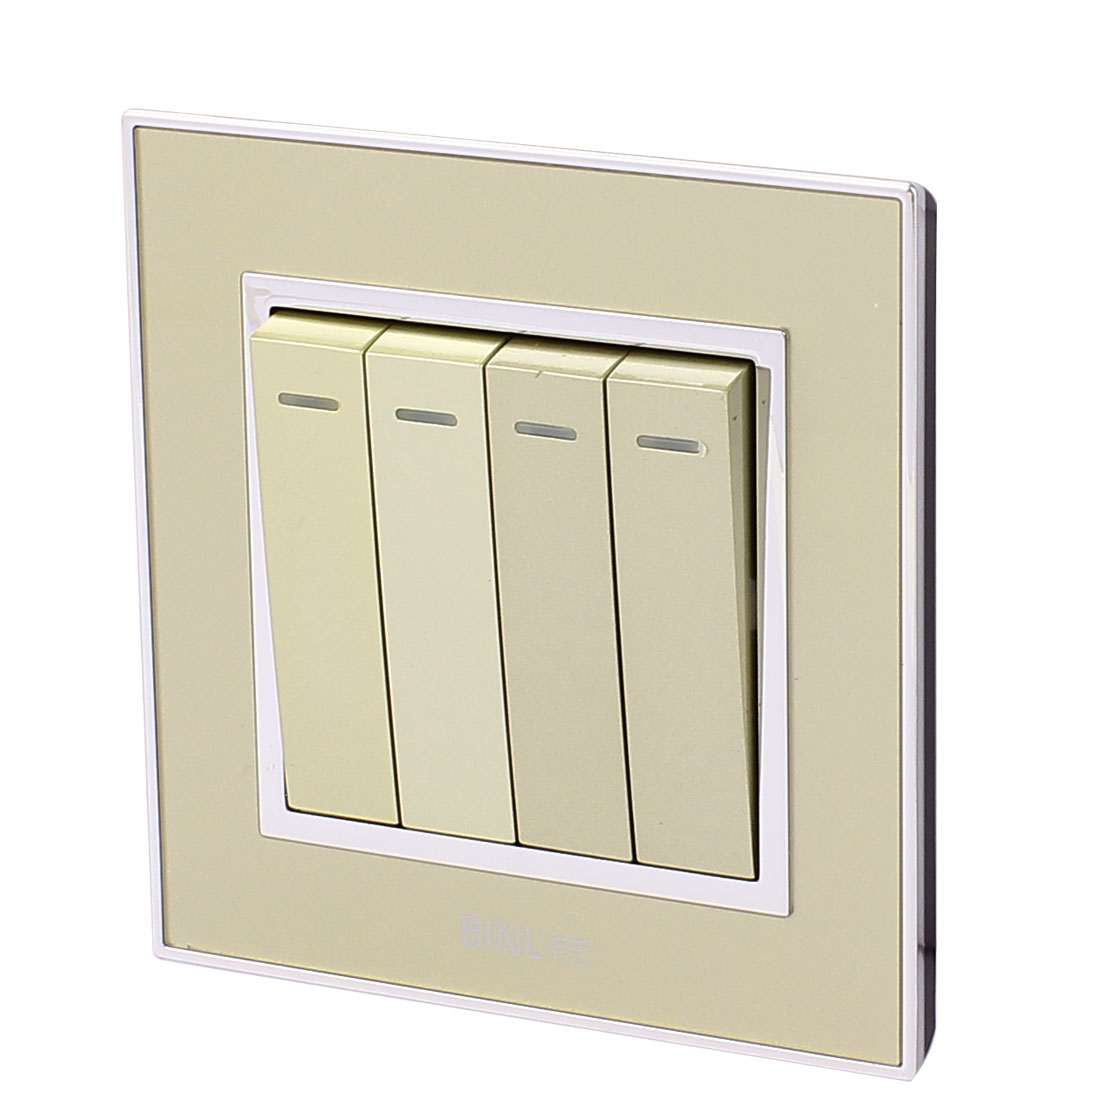 86 Type 4 Gang 1 Way On/Off Press Button Wall Mounted Panel Switch w Indicator Light